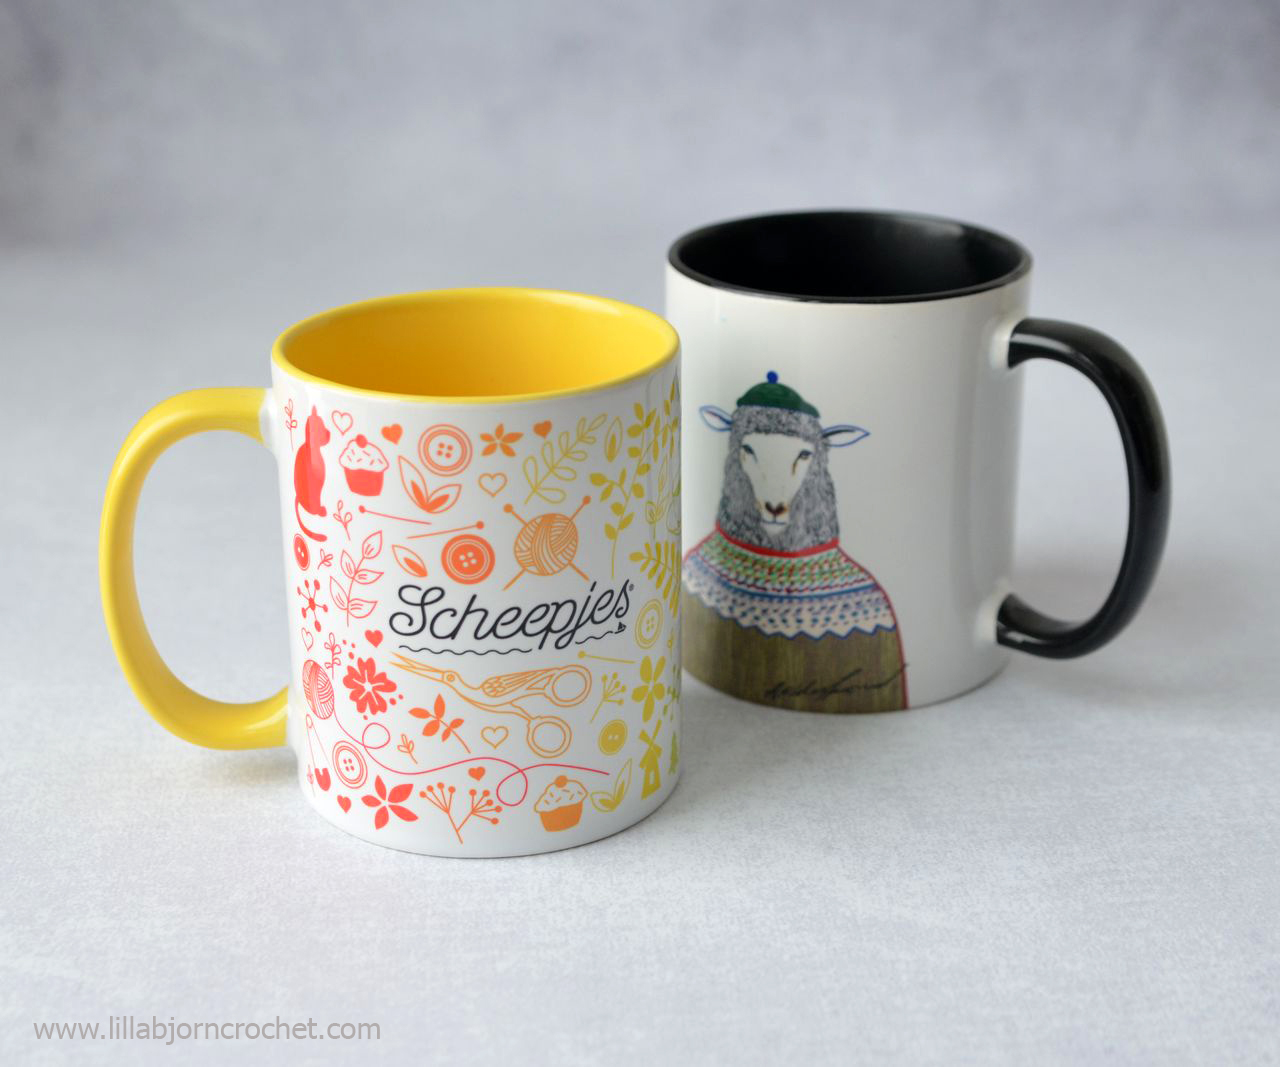 Scheepjes mugs. Creative gift guide by www.lillabjorncrochet.com